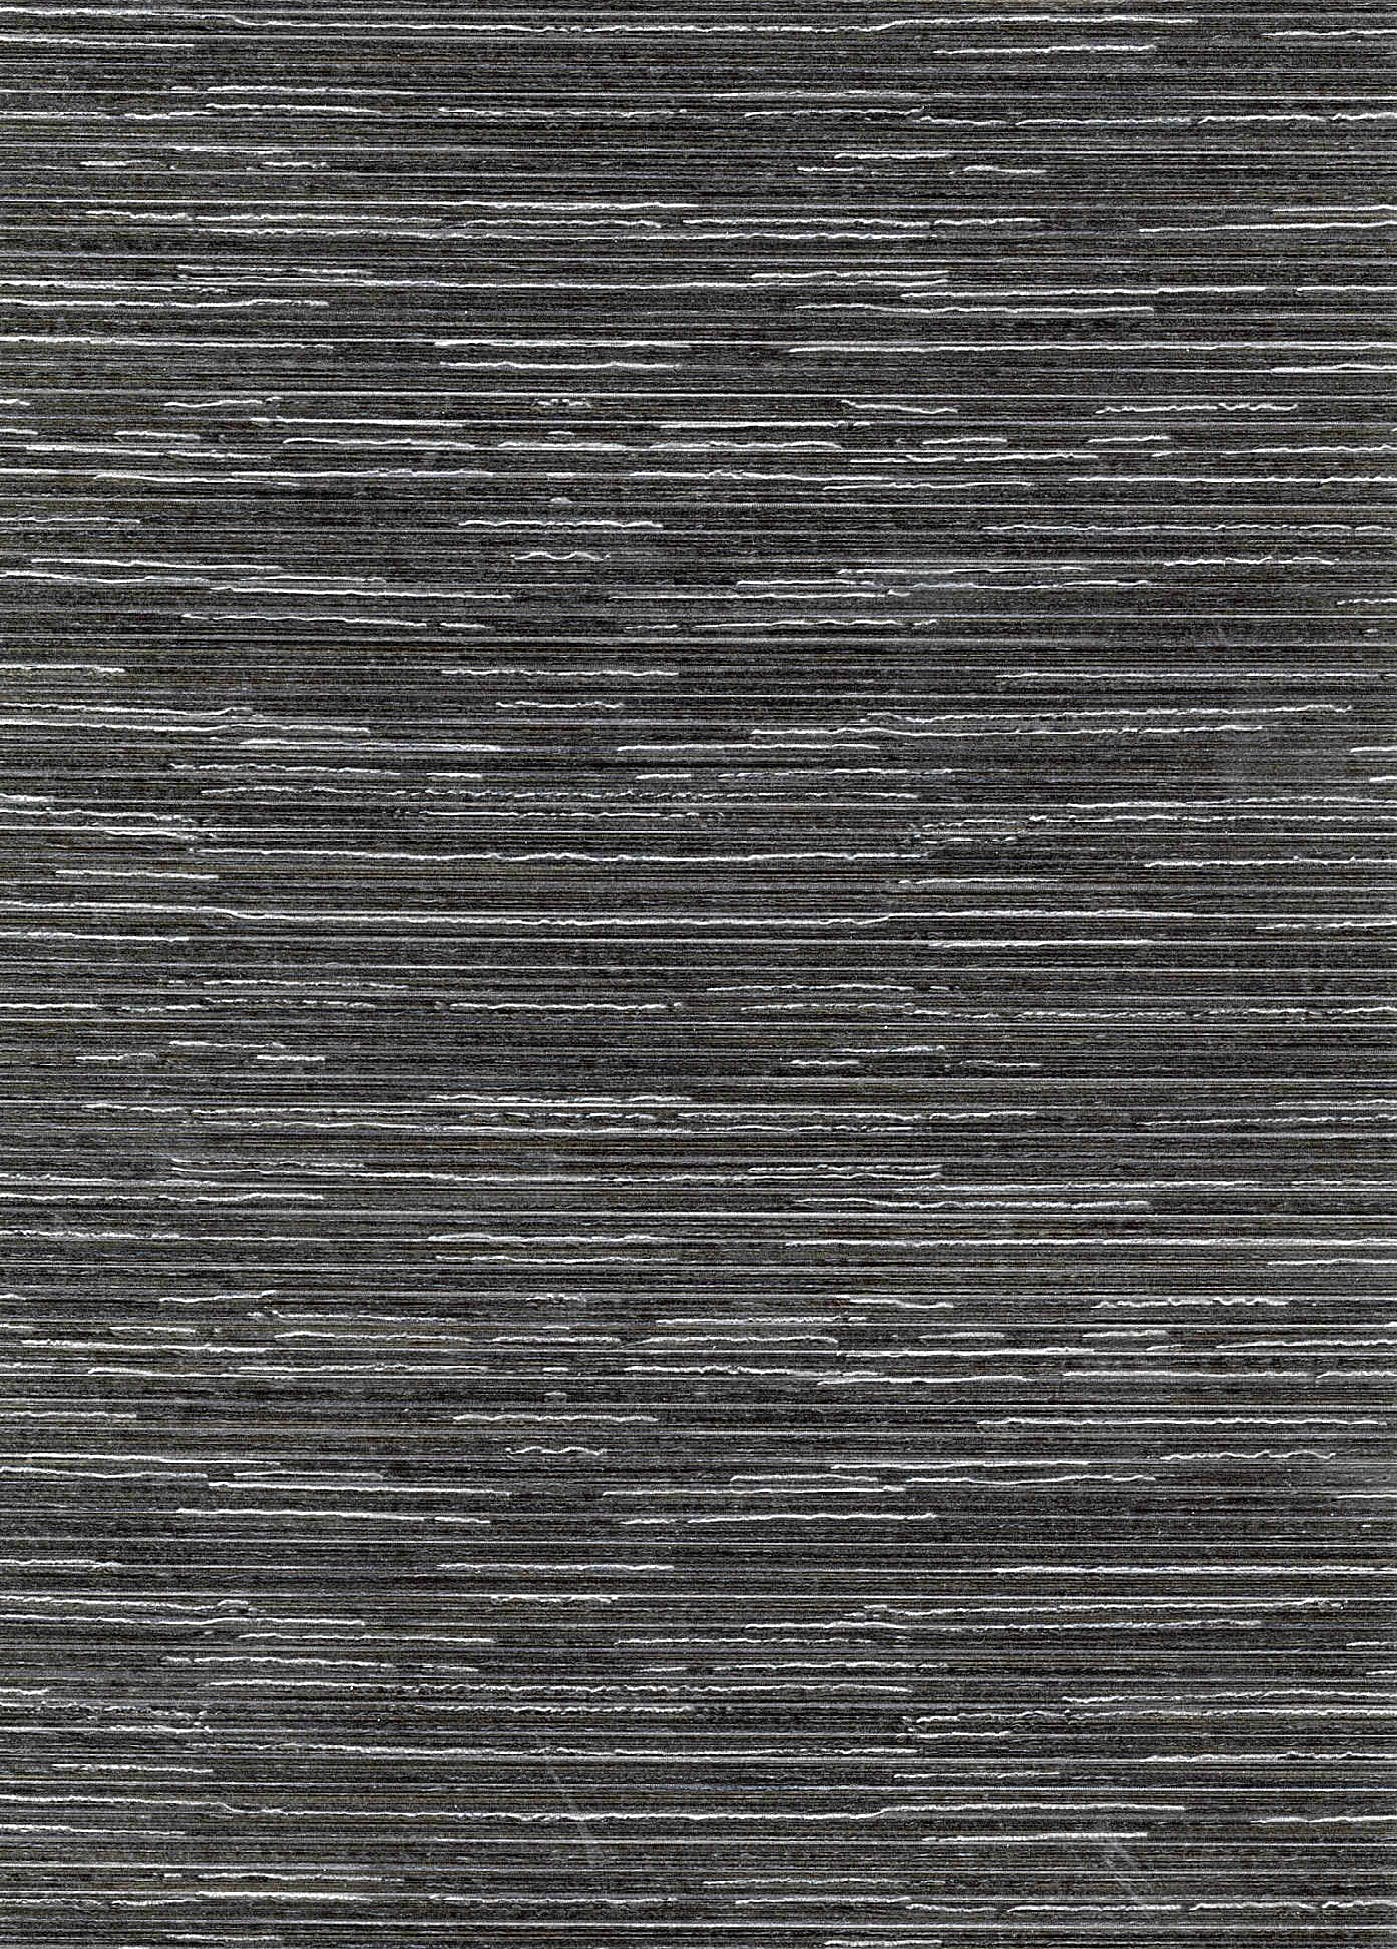 Valencia Black Linear Vinyl Flooring Click Tile - 1.48 sqm / Box